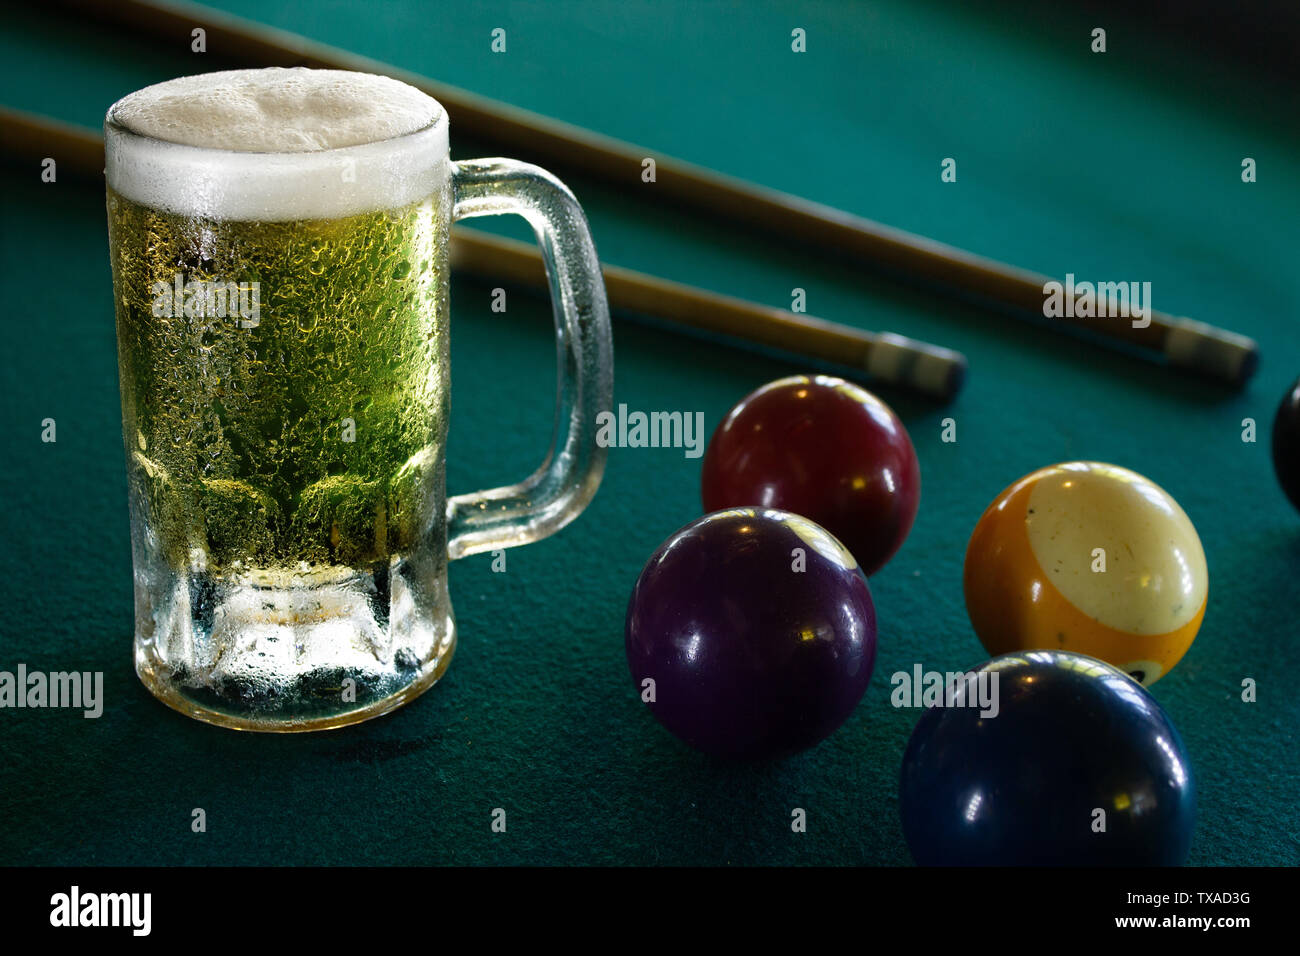 a frozen beer mug on a green billiard table, frozen, cold beer - Stock Image